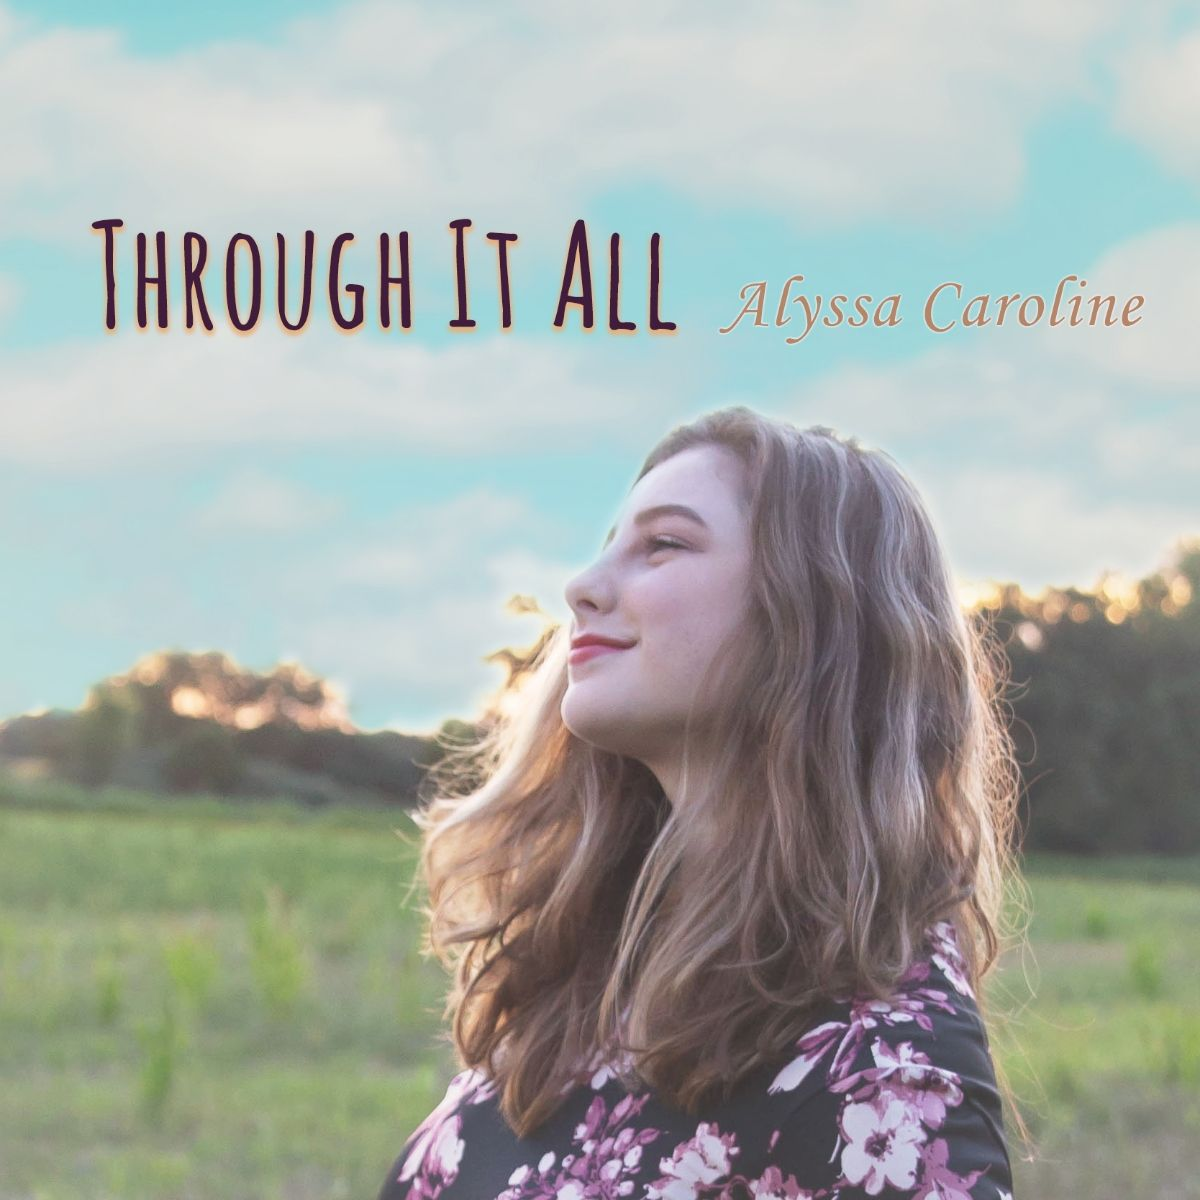 Through it All – Alyssa Caroline